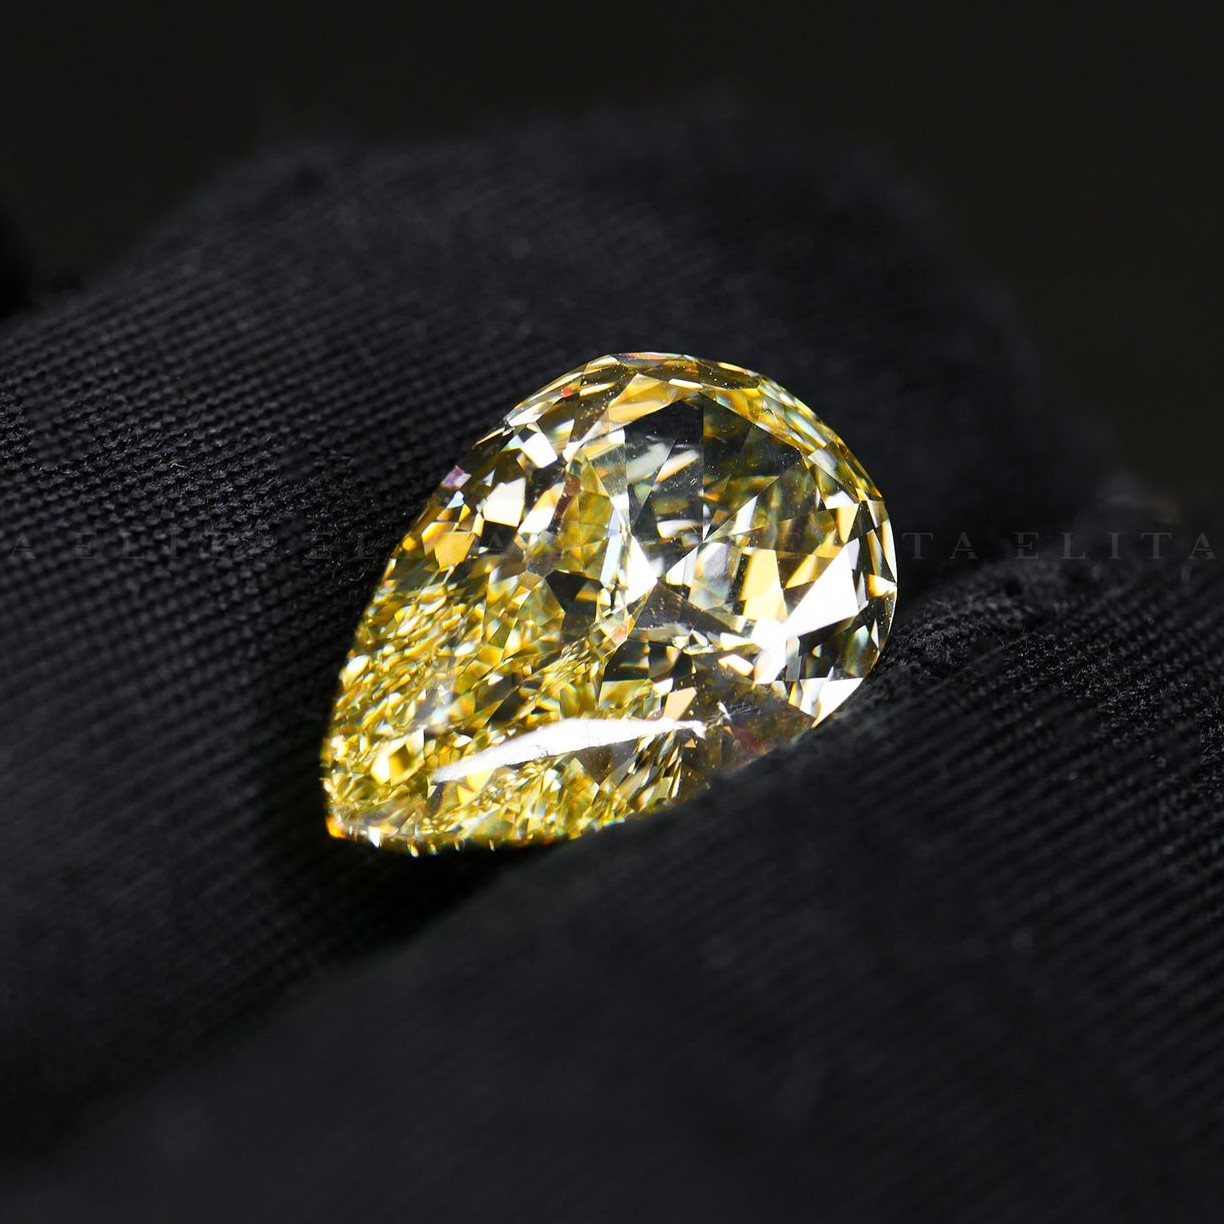 3.55ct Fancy Vivid Yellow Pear Modified Brilliant